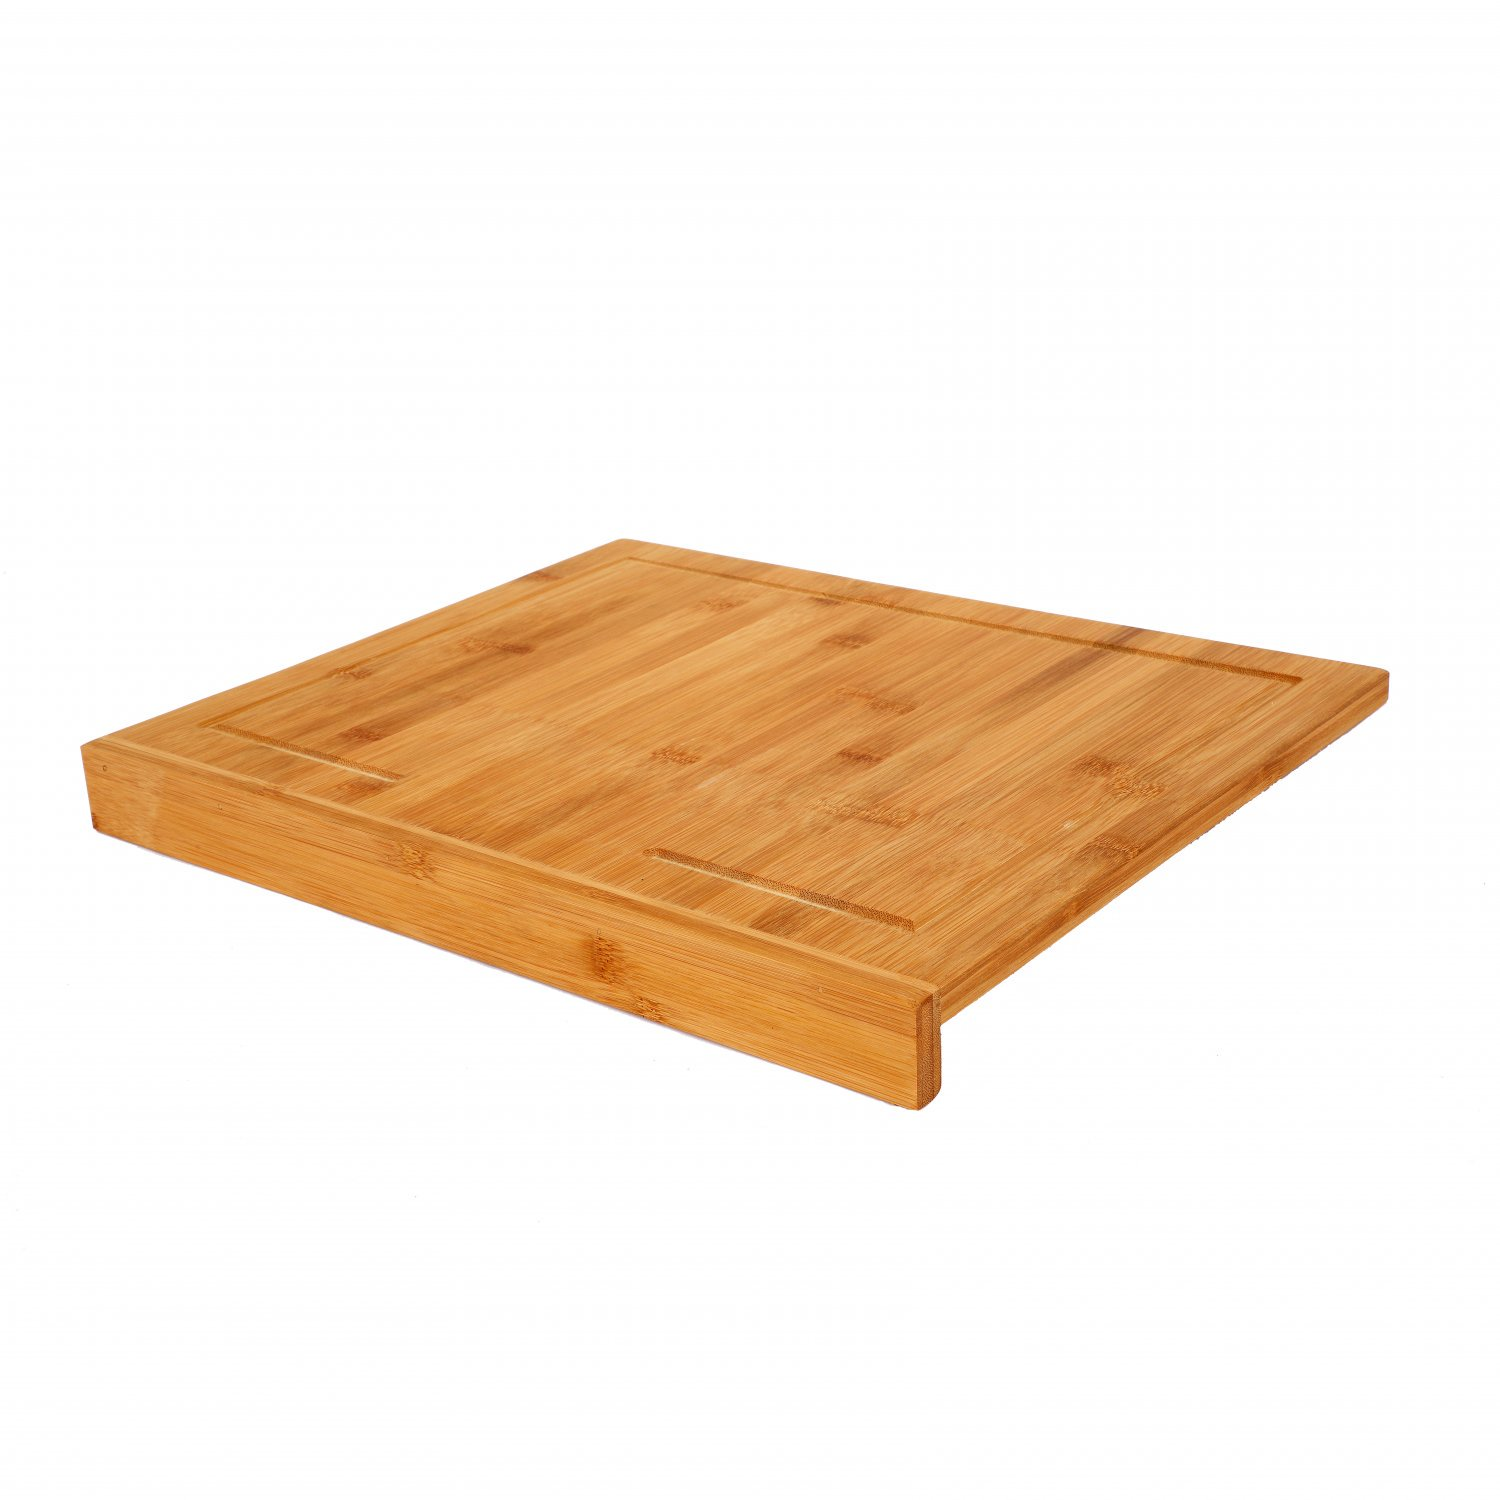 Counter Edge Bamboo Wooden Chopping Cutting Board Kitchen